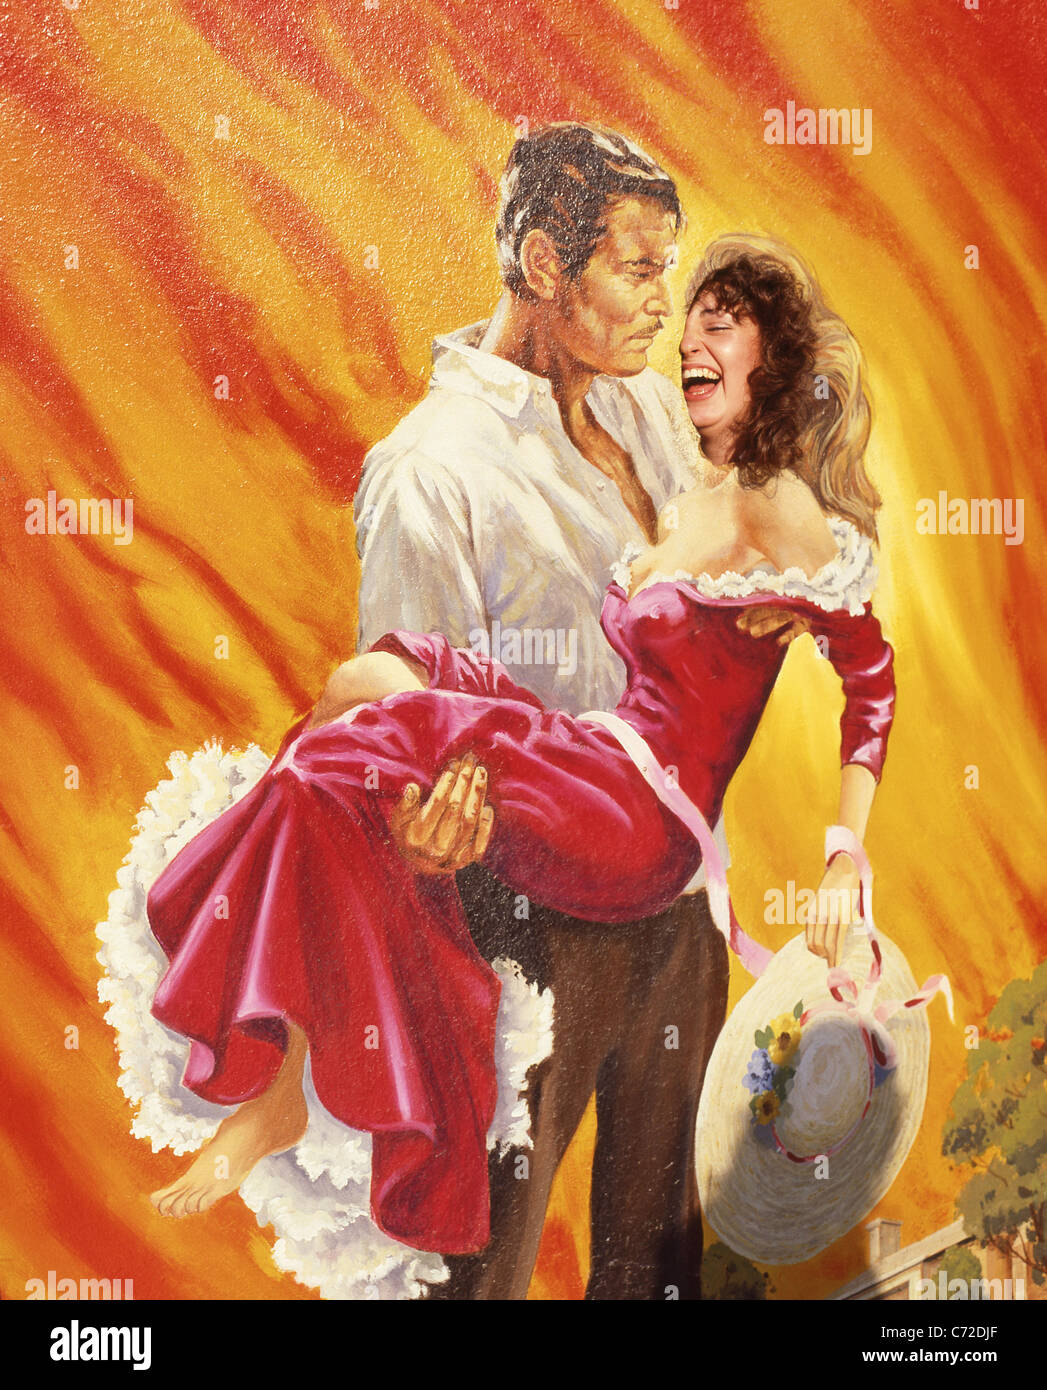 'Gone with the Wind' photo board, Universal Studios, Universal City, Los Angeles, California, United States - Stock Image